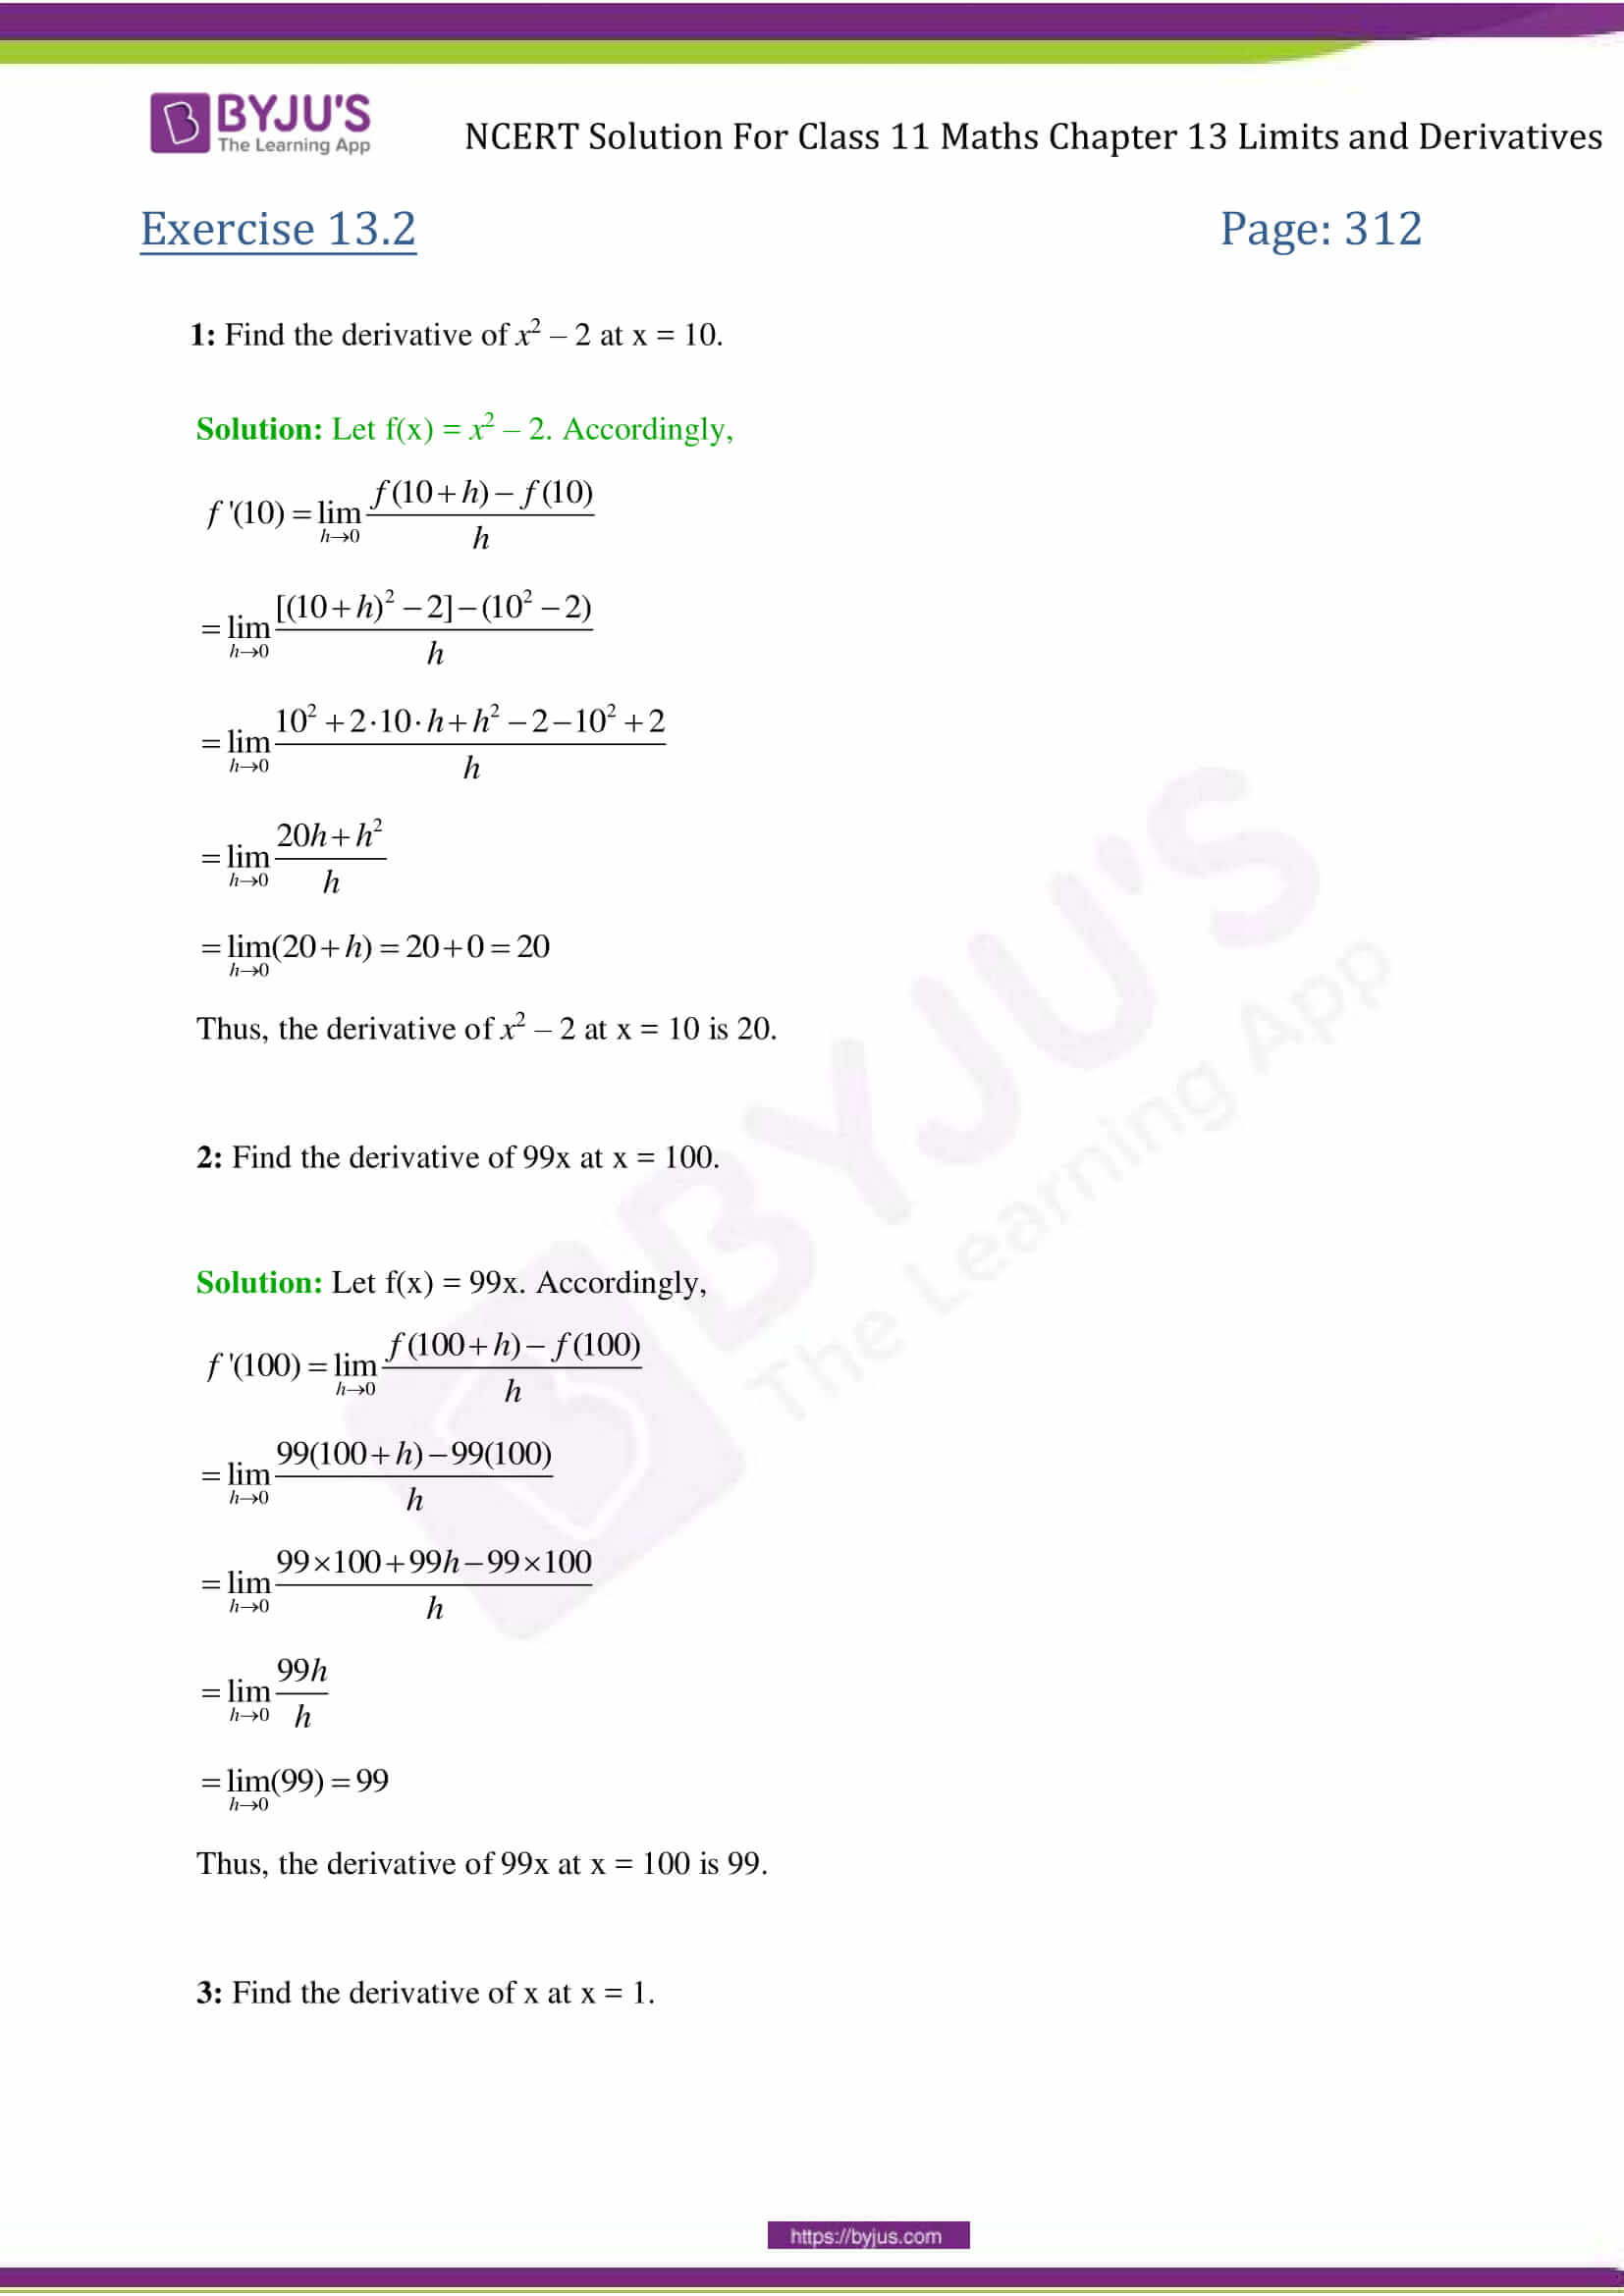 NCERT Solutions for Class 11 Maths Exercise 13 2 Chapter 13